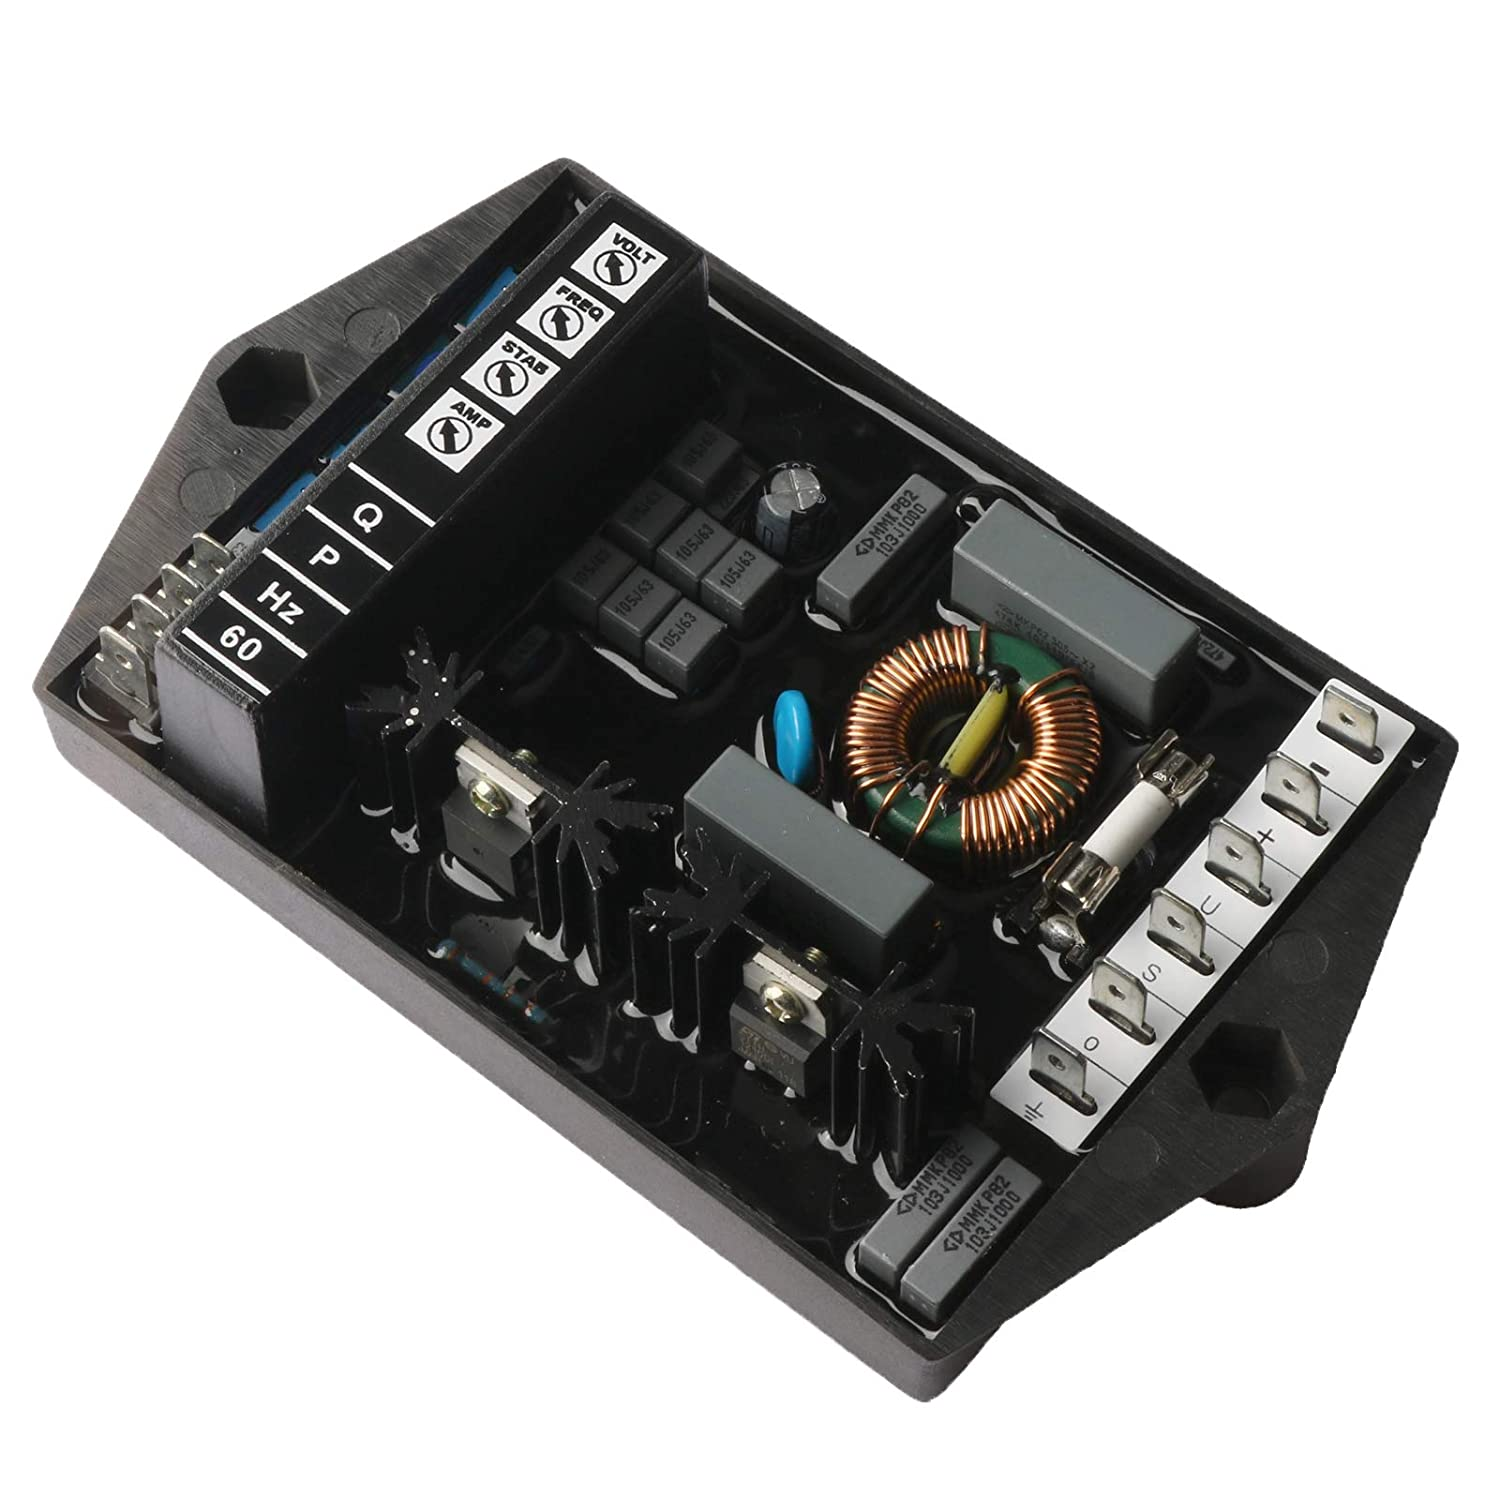 Friday Part AVR M16FA655A Automatic Voltage Regulator for Generator Genset With 1Year Warranty